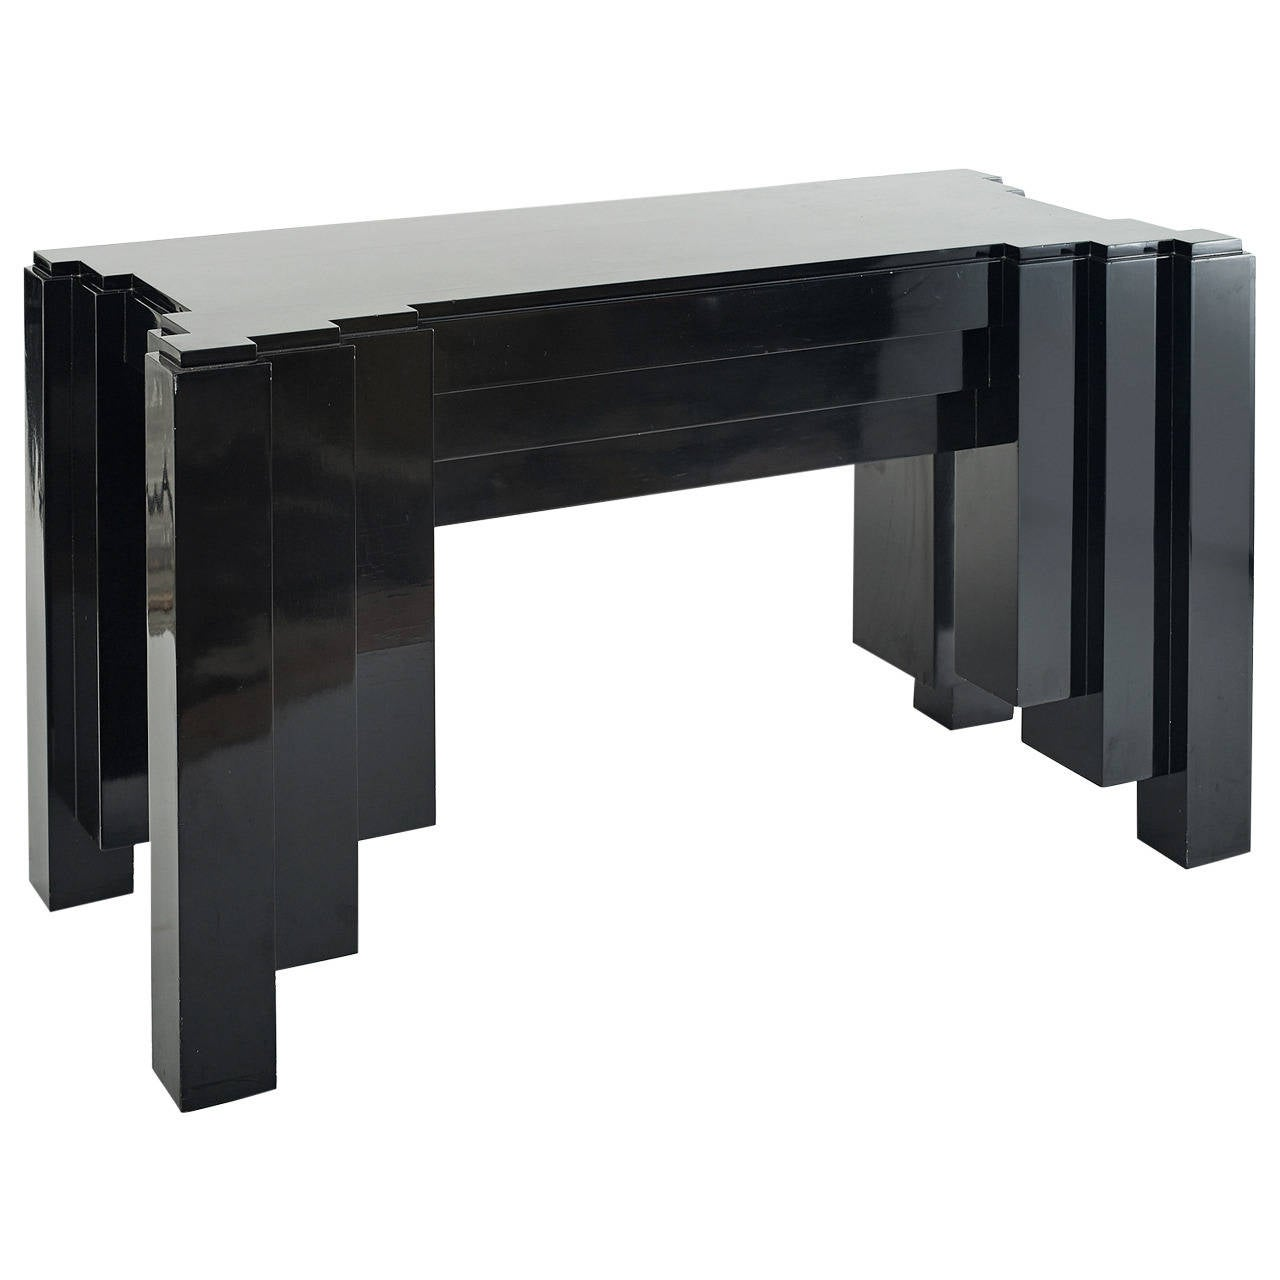 1930s Paul Frankl Inspired Skyscraper Console or Entry Table